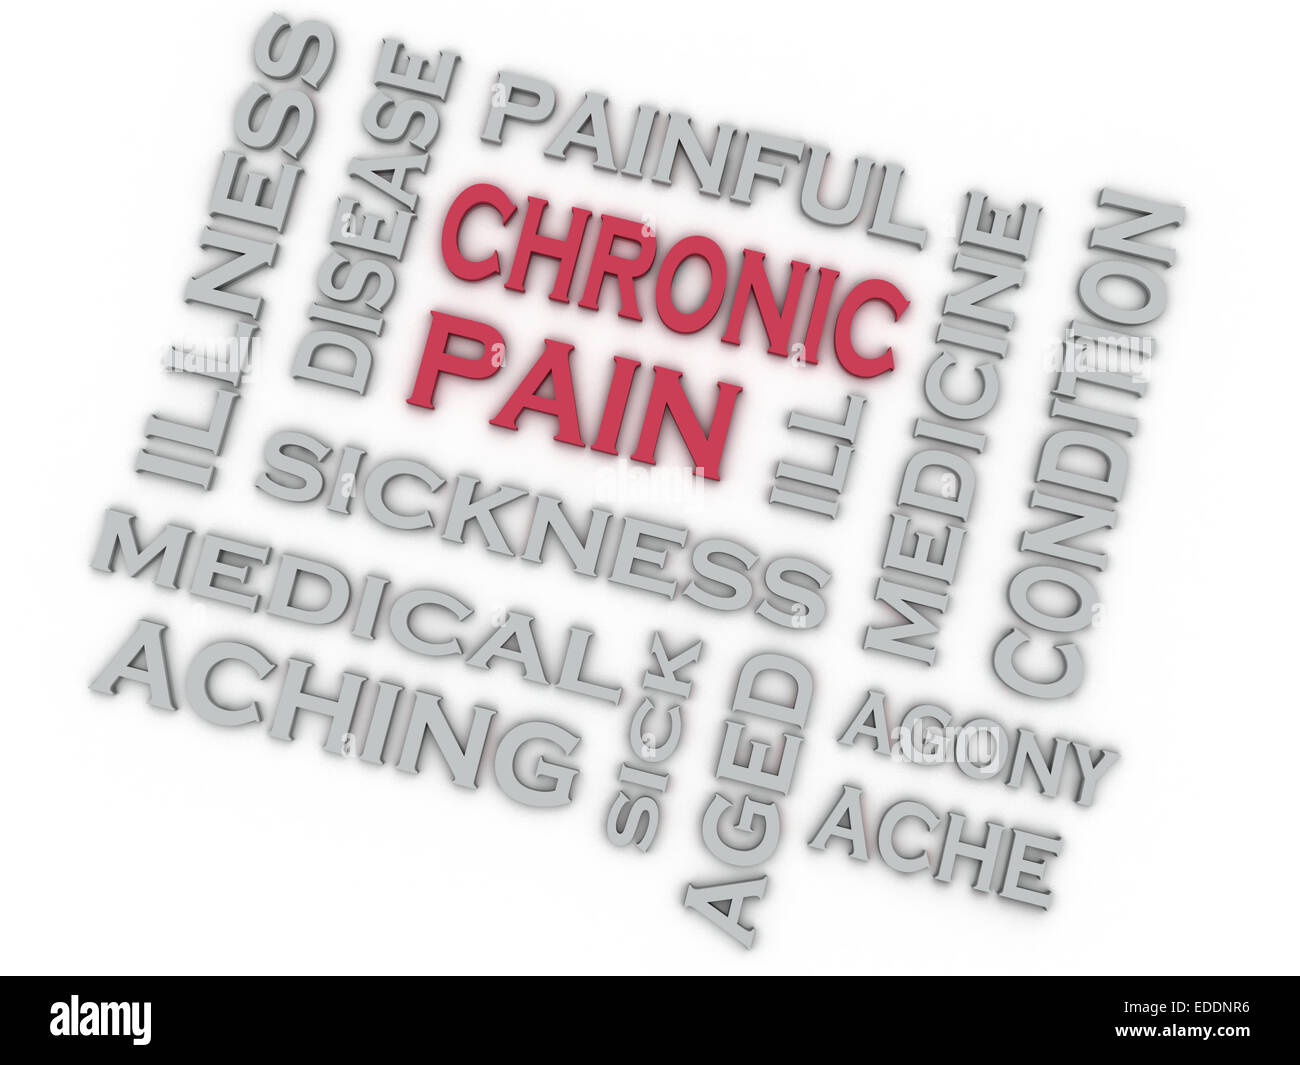 3d image CHRONIC PAIN issues concept word cloud background - Stock Image